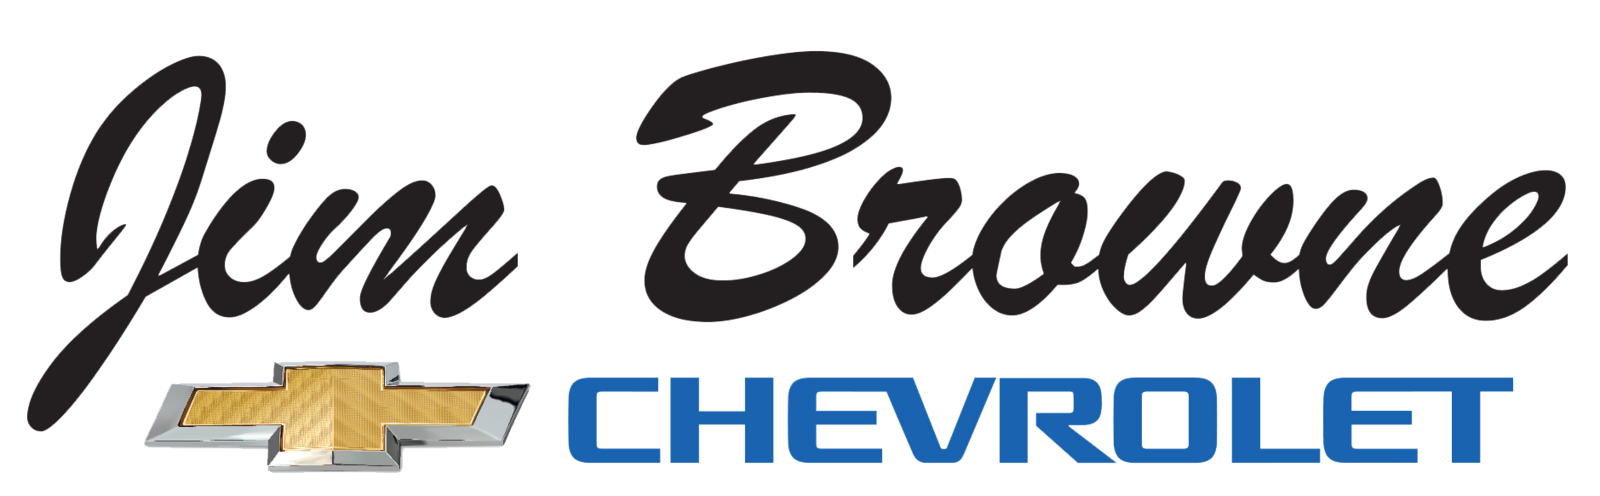 Jim Browne Chevy >> Jim Browne Chevrolet - Tampa, FL: Read Consumer reviews, Browse Used and New Cars for Sale